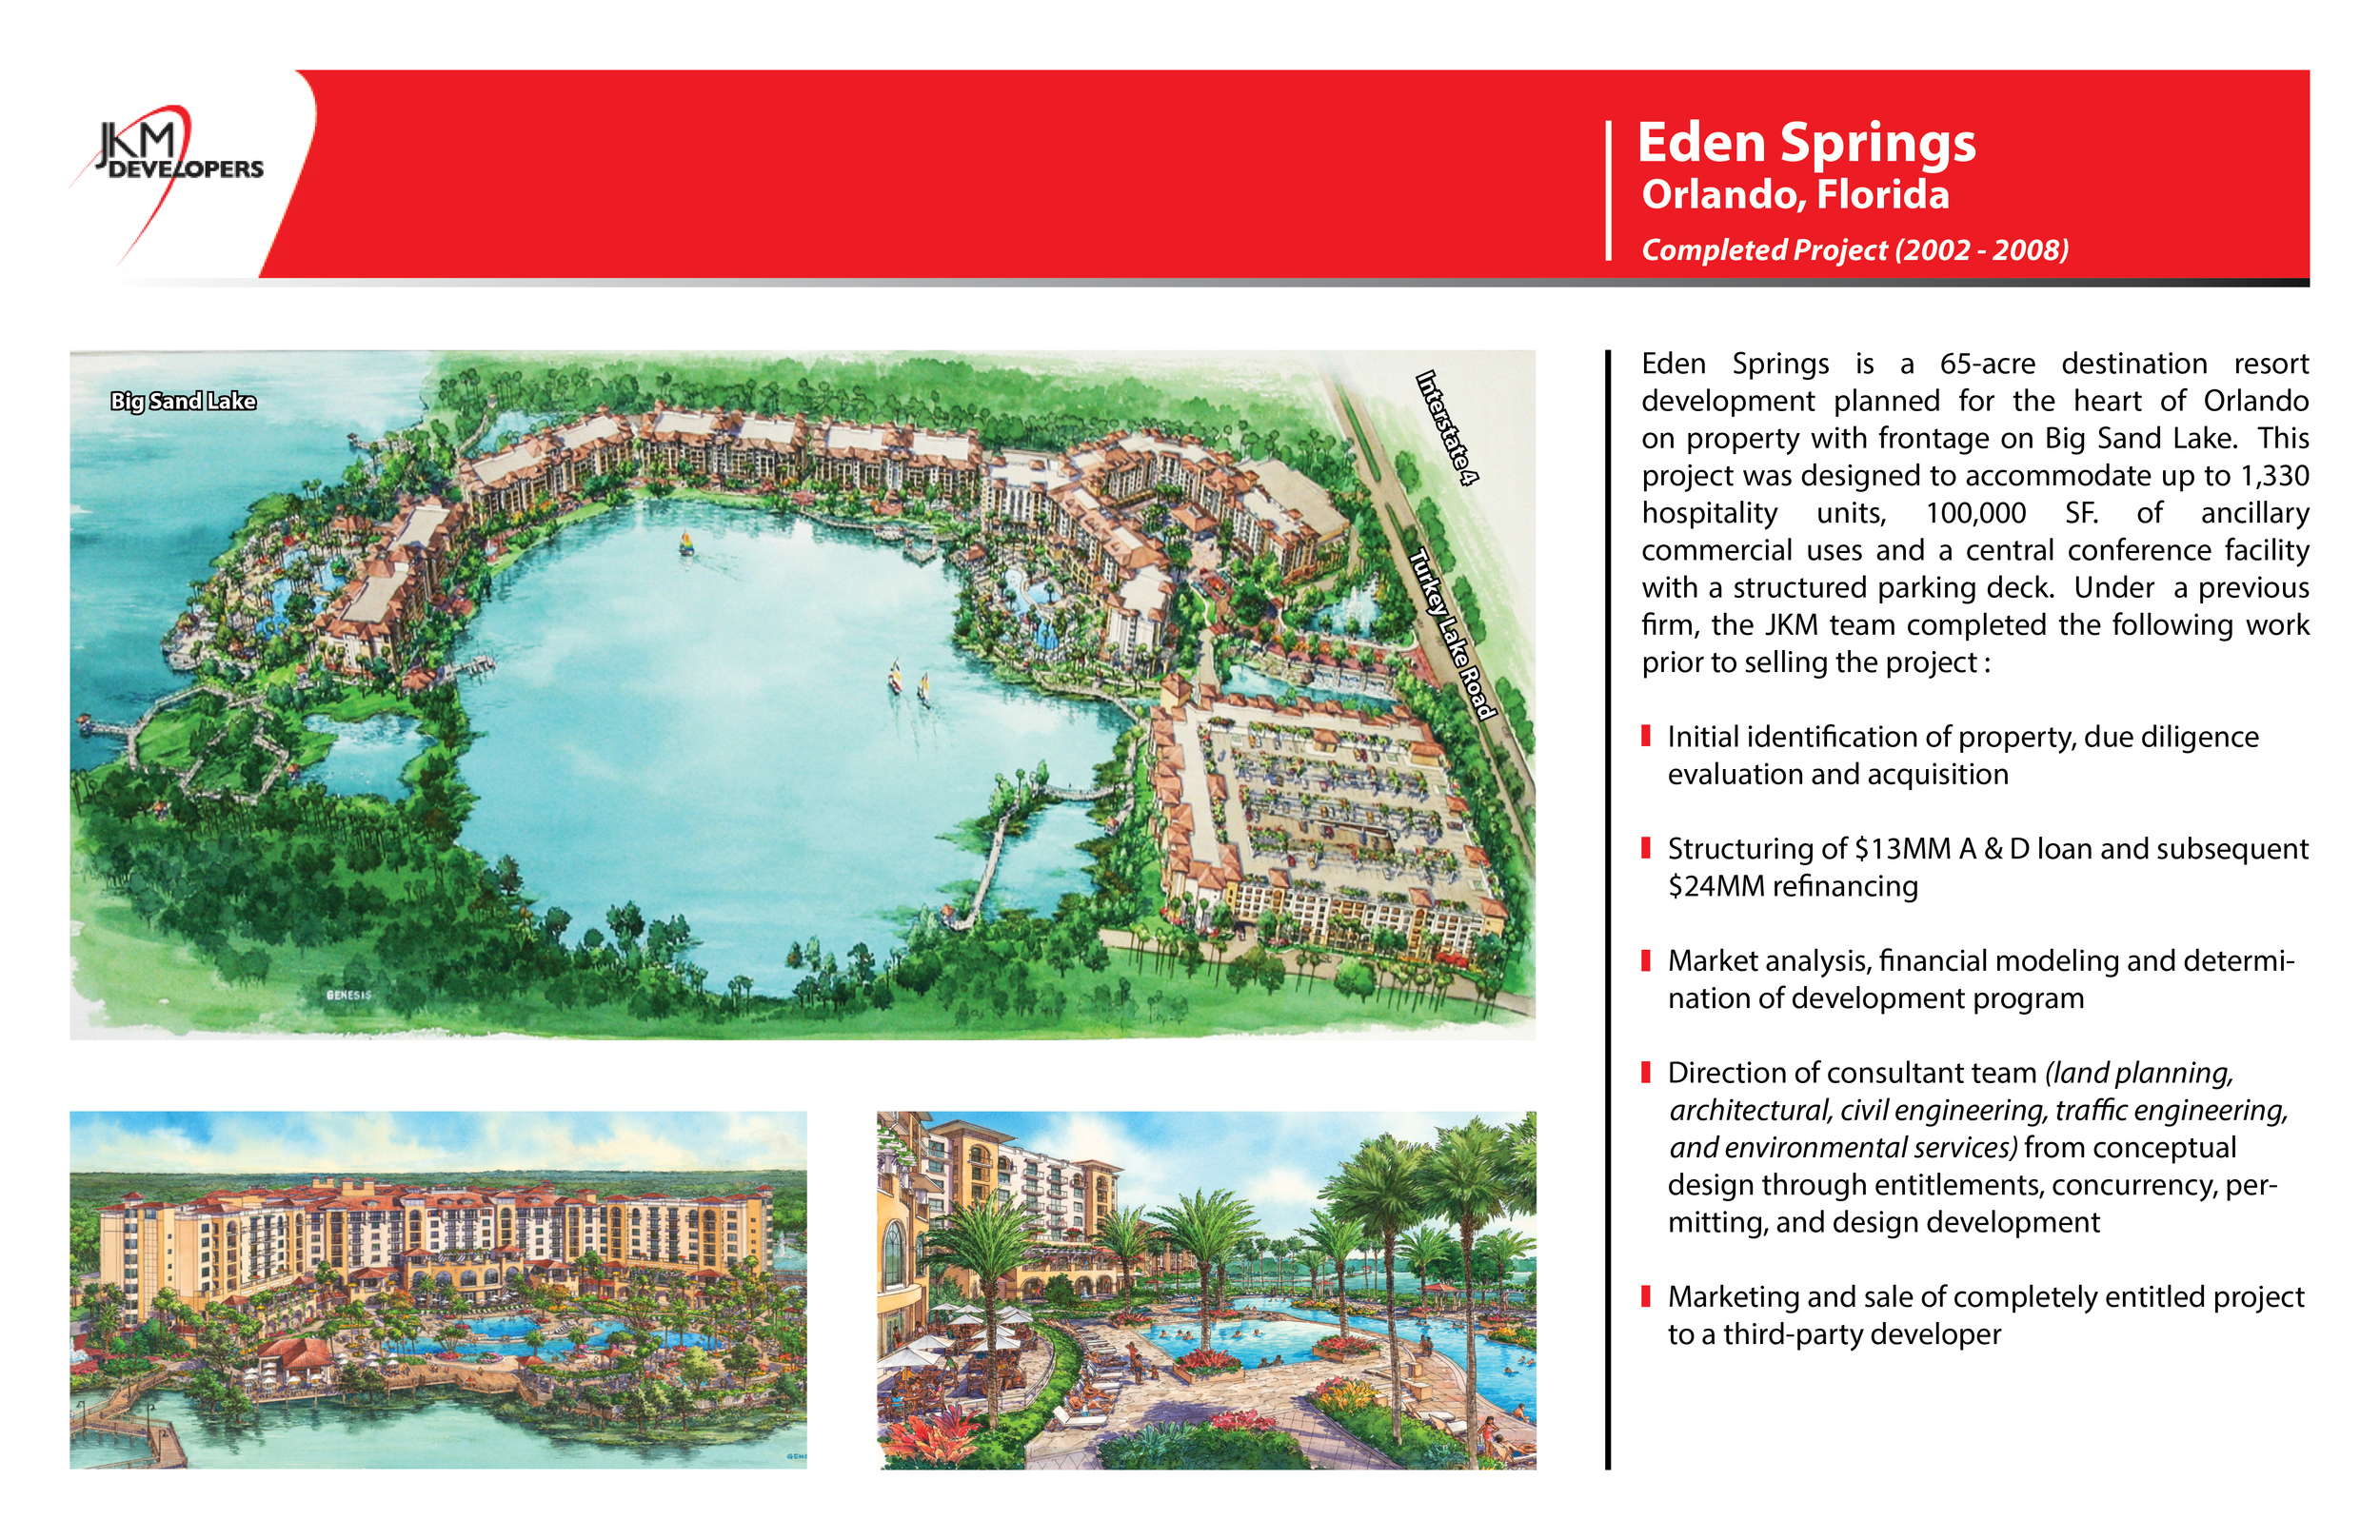 EdenSprings_ProjectSheet.jpg